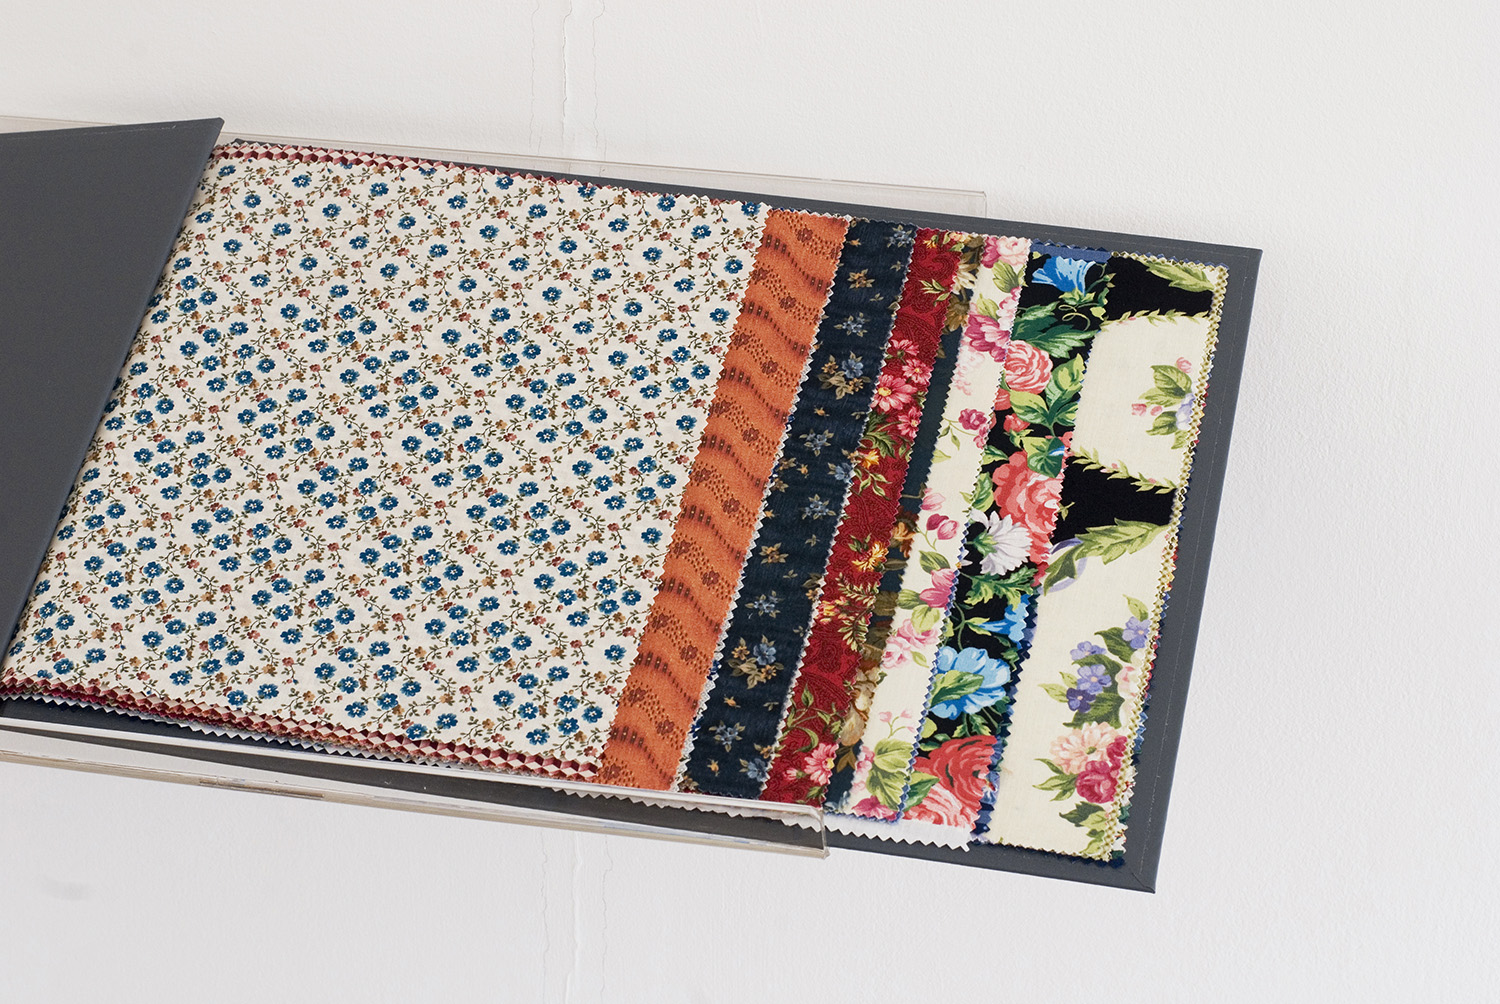 Faulty Samples I , 2012 - 2014 Bound book of works on found fabric samples 48 x 32 cm / 18.9 x 12.6 inches (closed book)